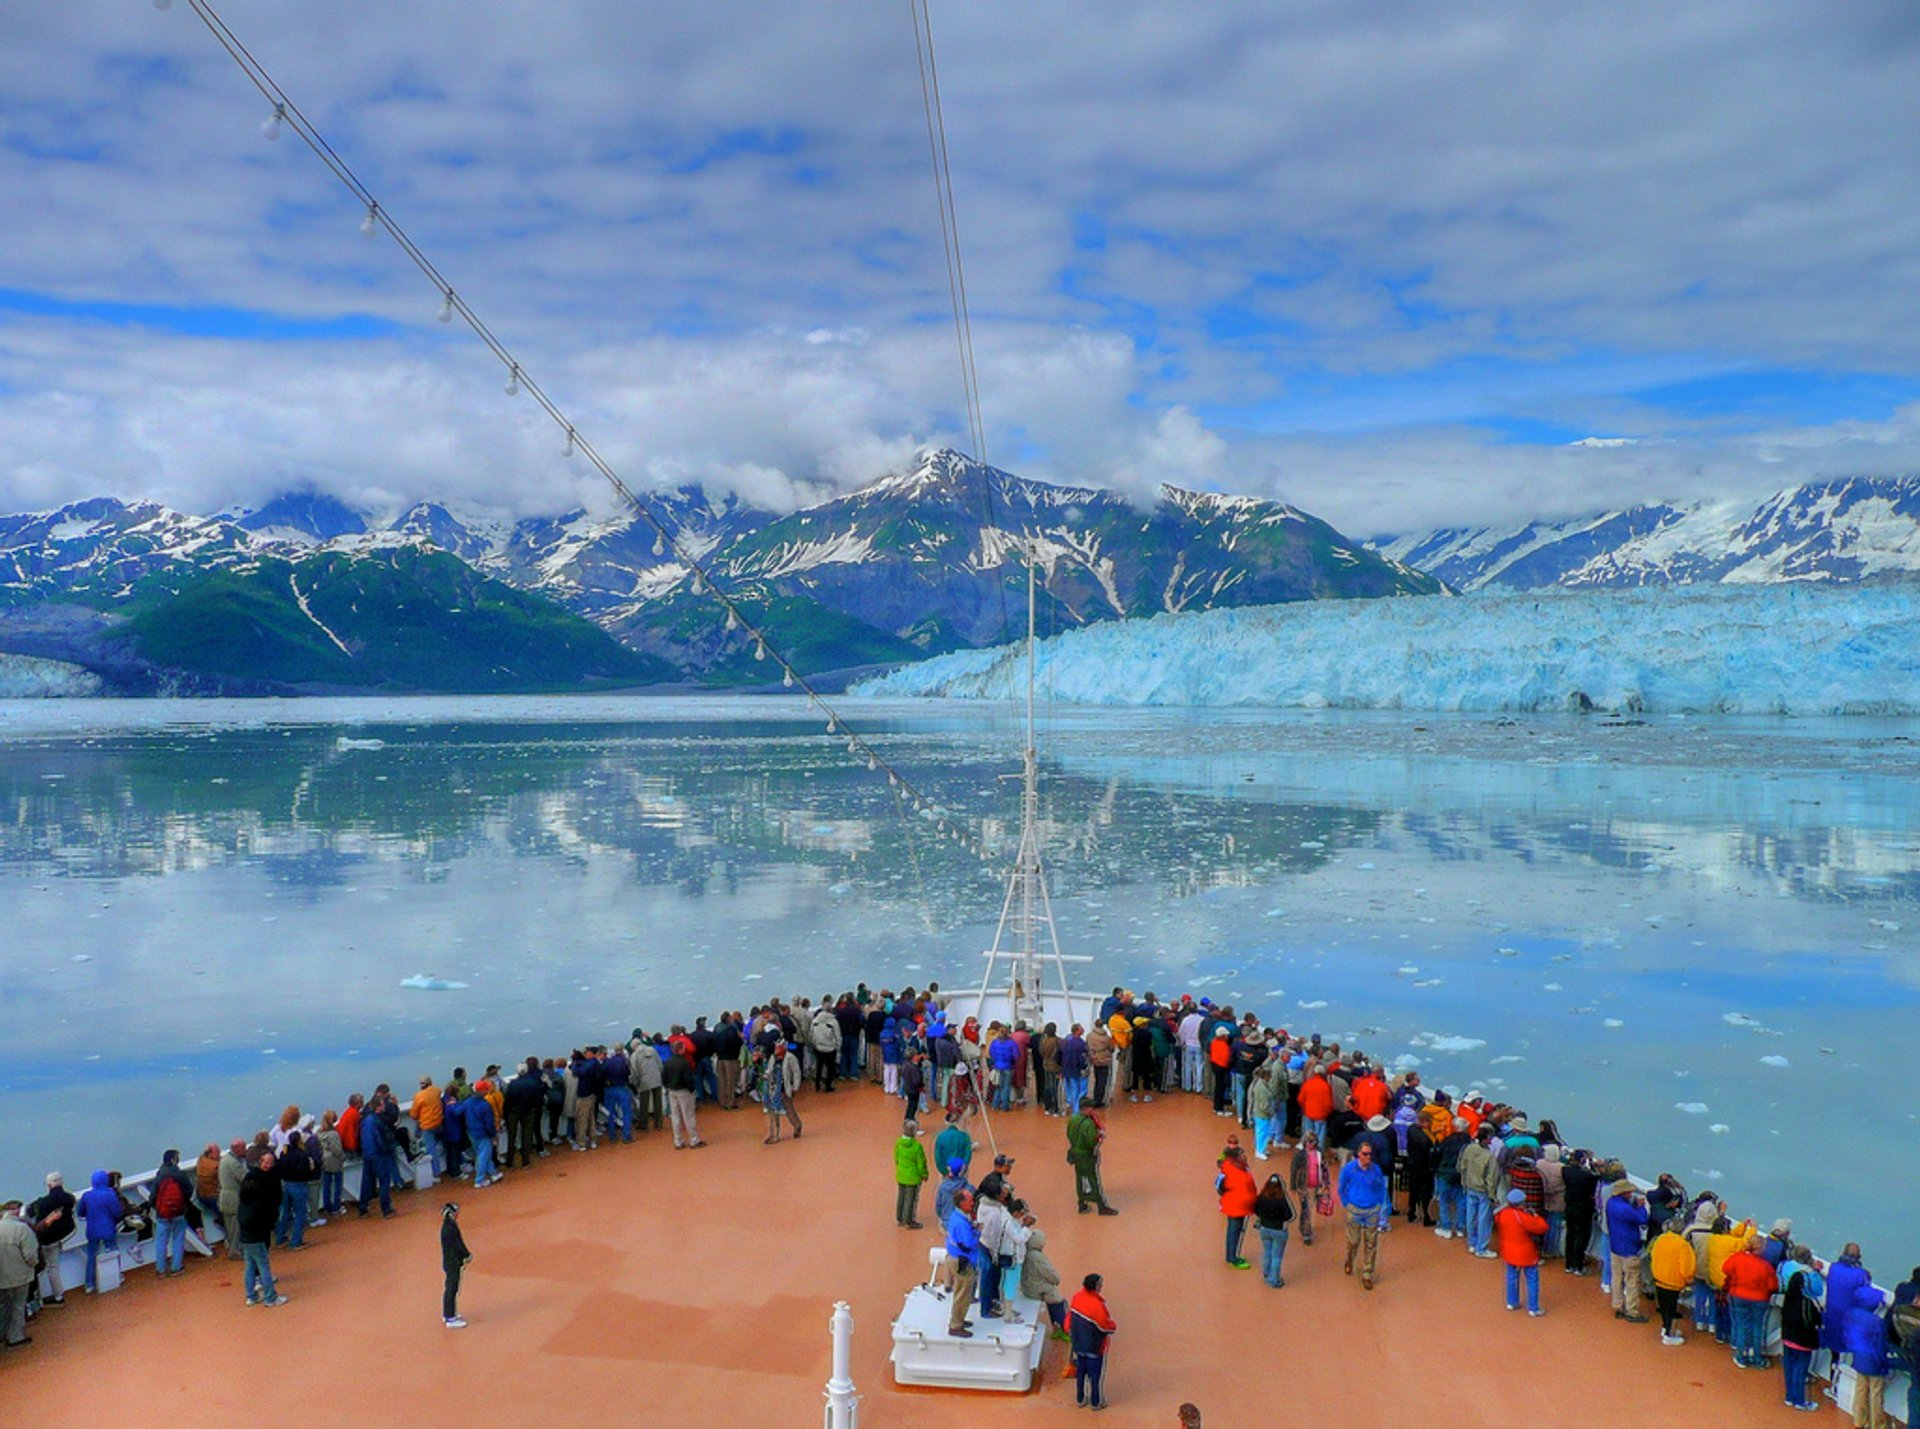 Active Glaciers Cruise in Alaska 2019 - Best Time